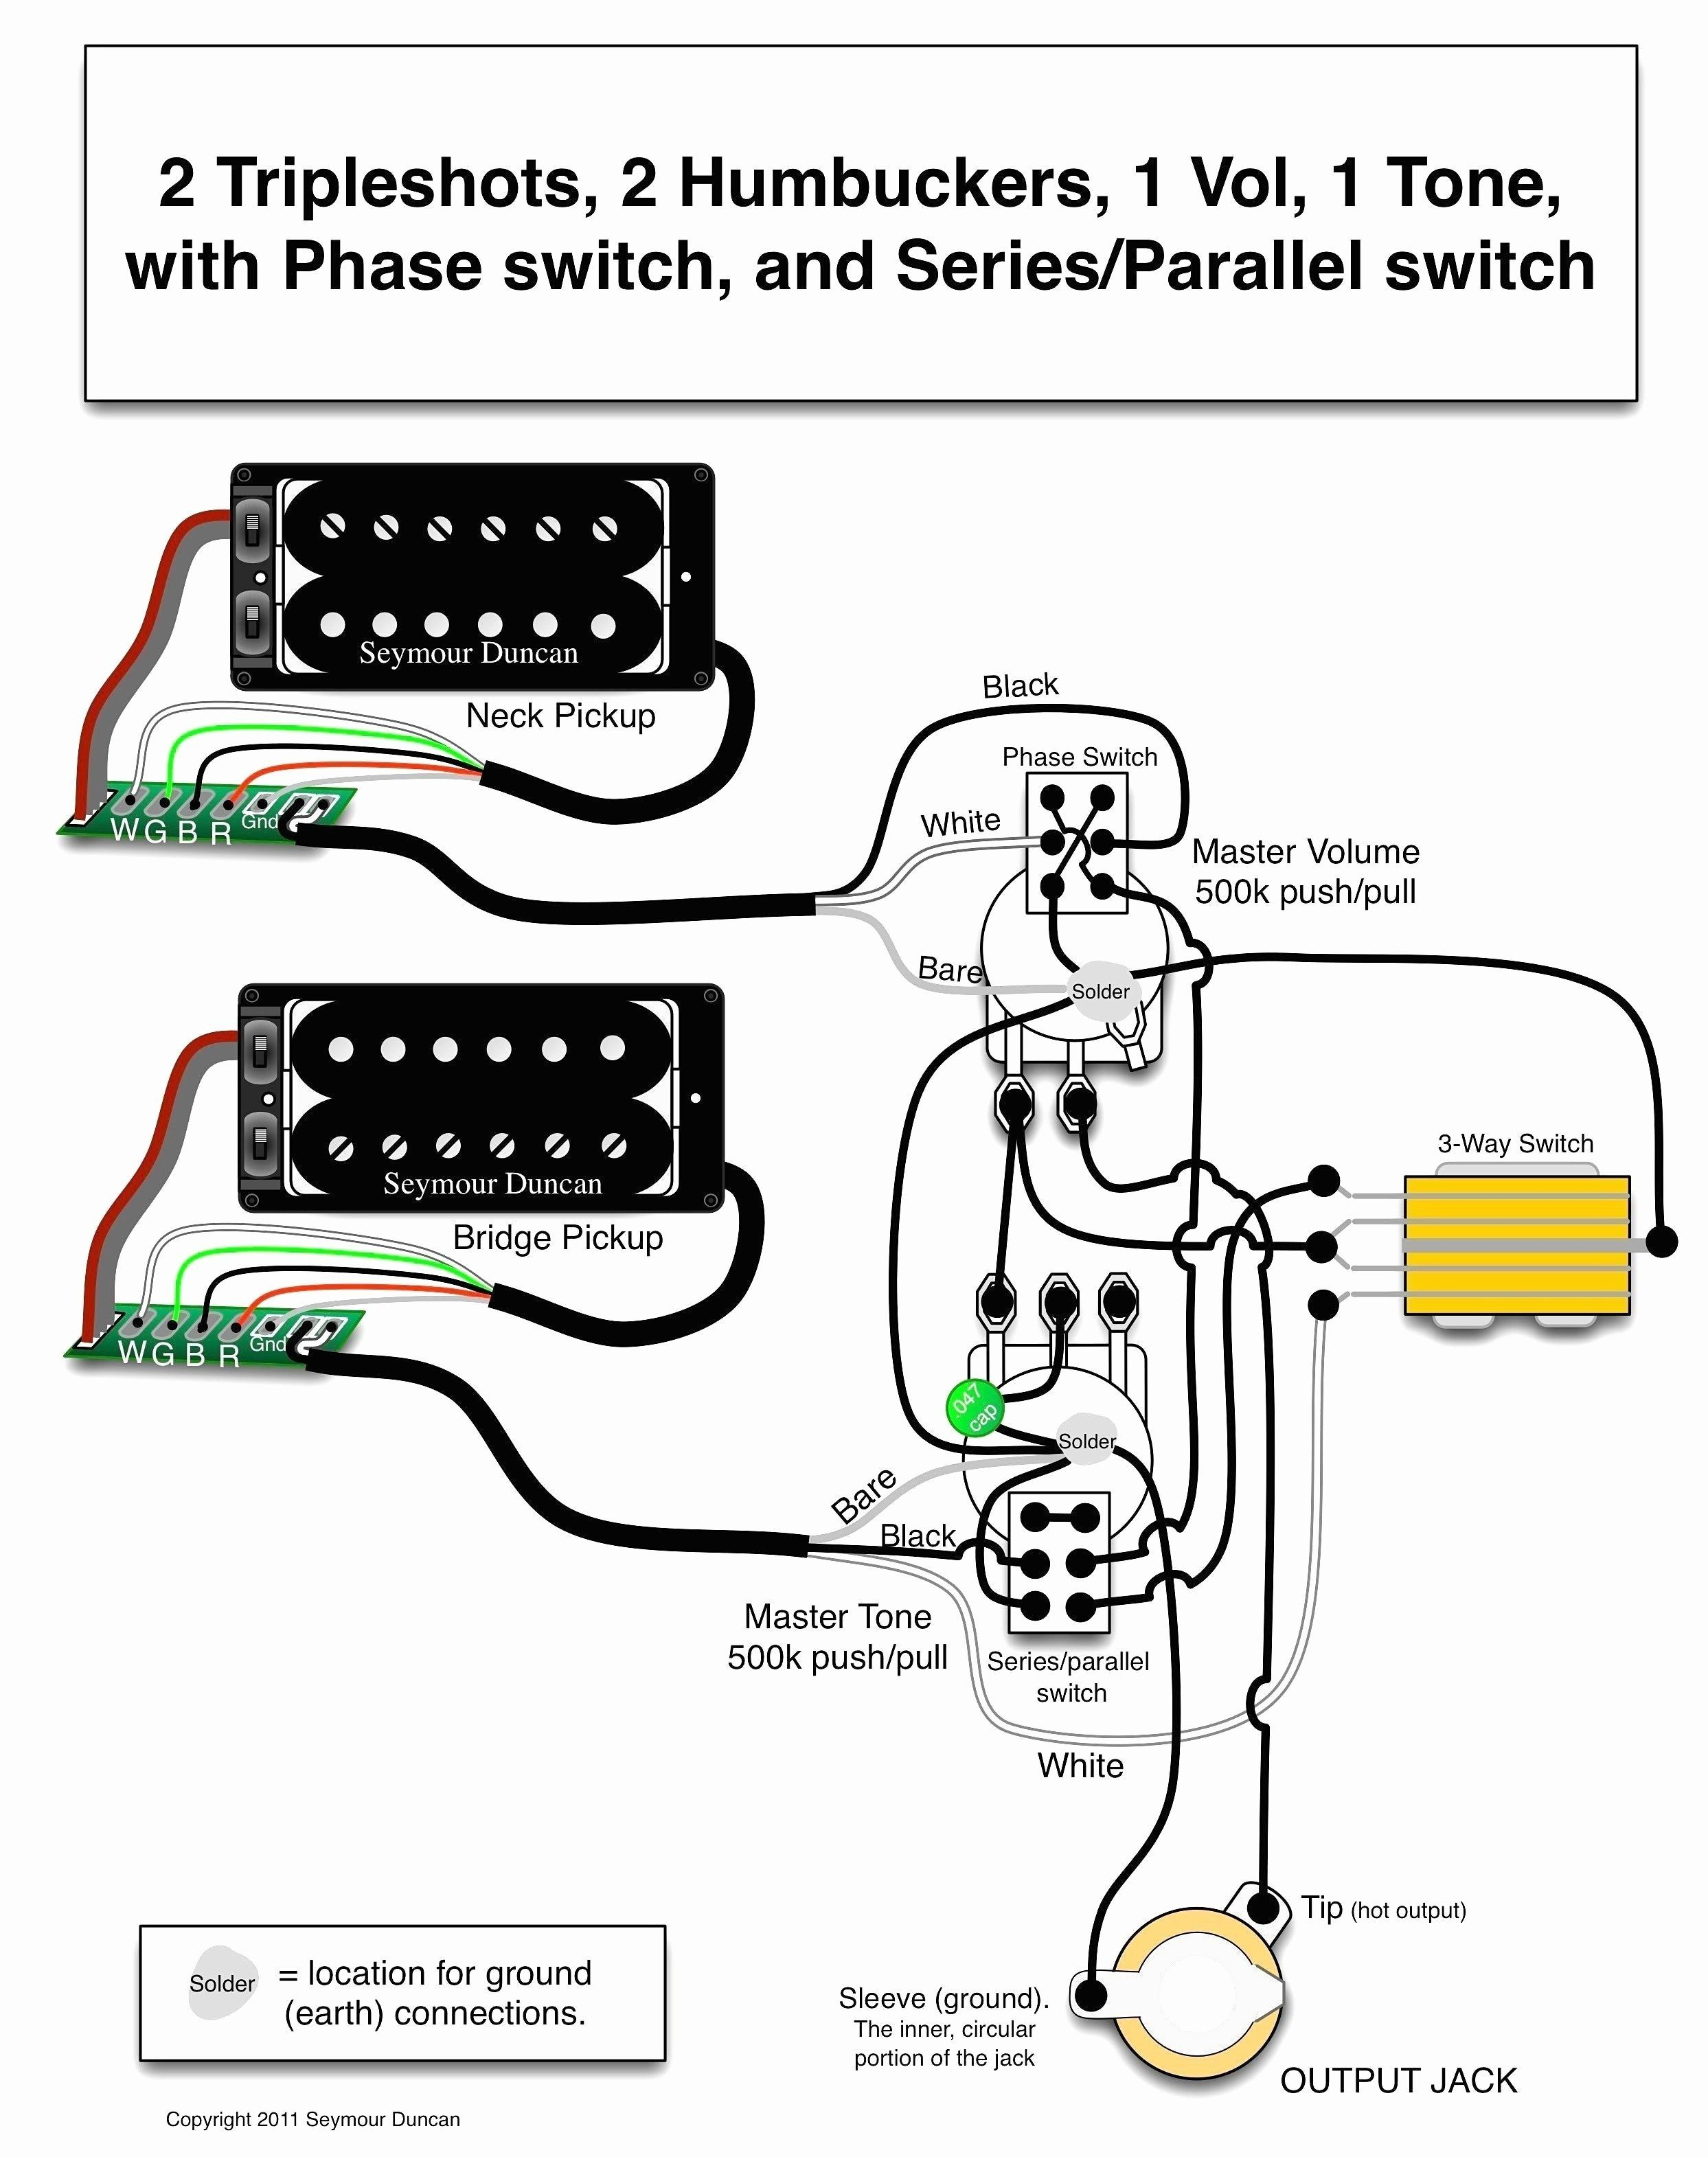 5D7C2 Sg Seymour Duncan Wiring Diagrams | Digital Resources on mercury outboard wiring, model train wiring, pelco ptz wiring, stratocaster wiring,